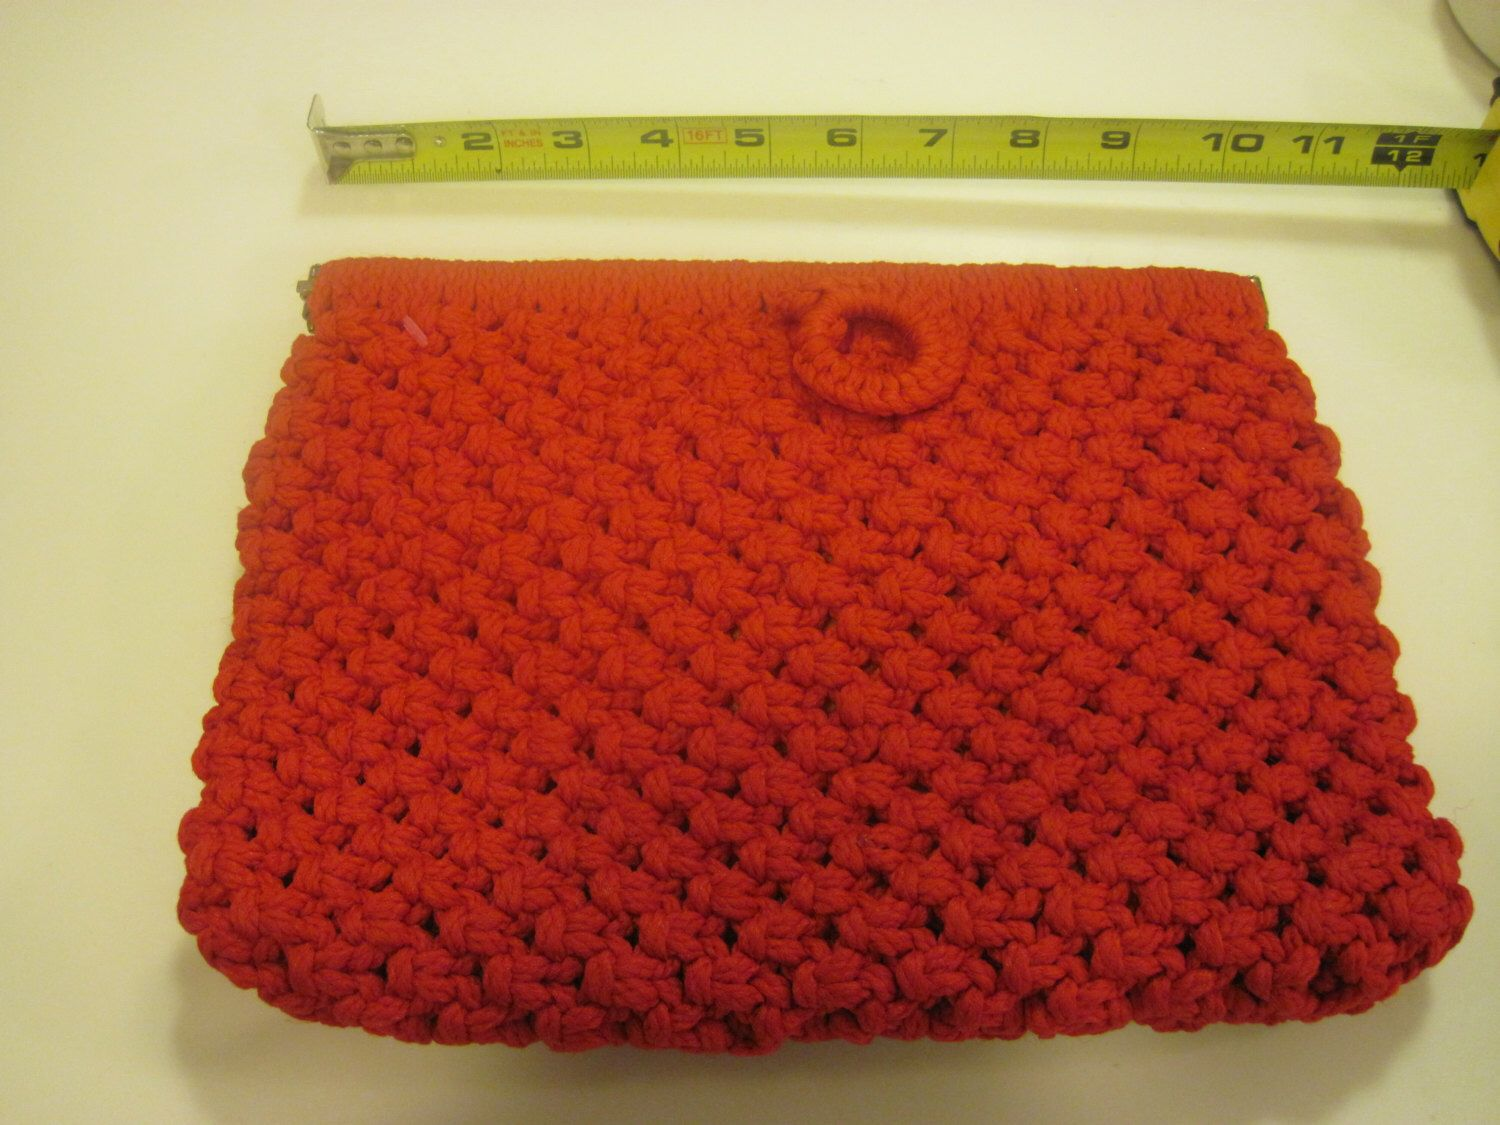 https://www.etsy.com/listing/263511575/vintage-red-macrame-woven-clutch-purse